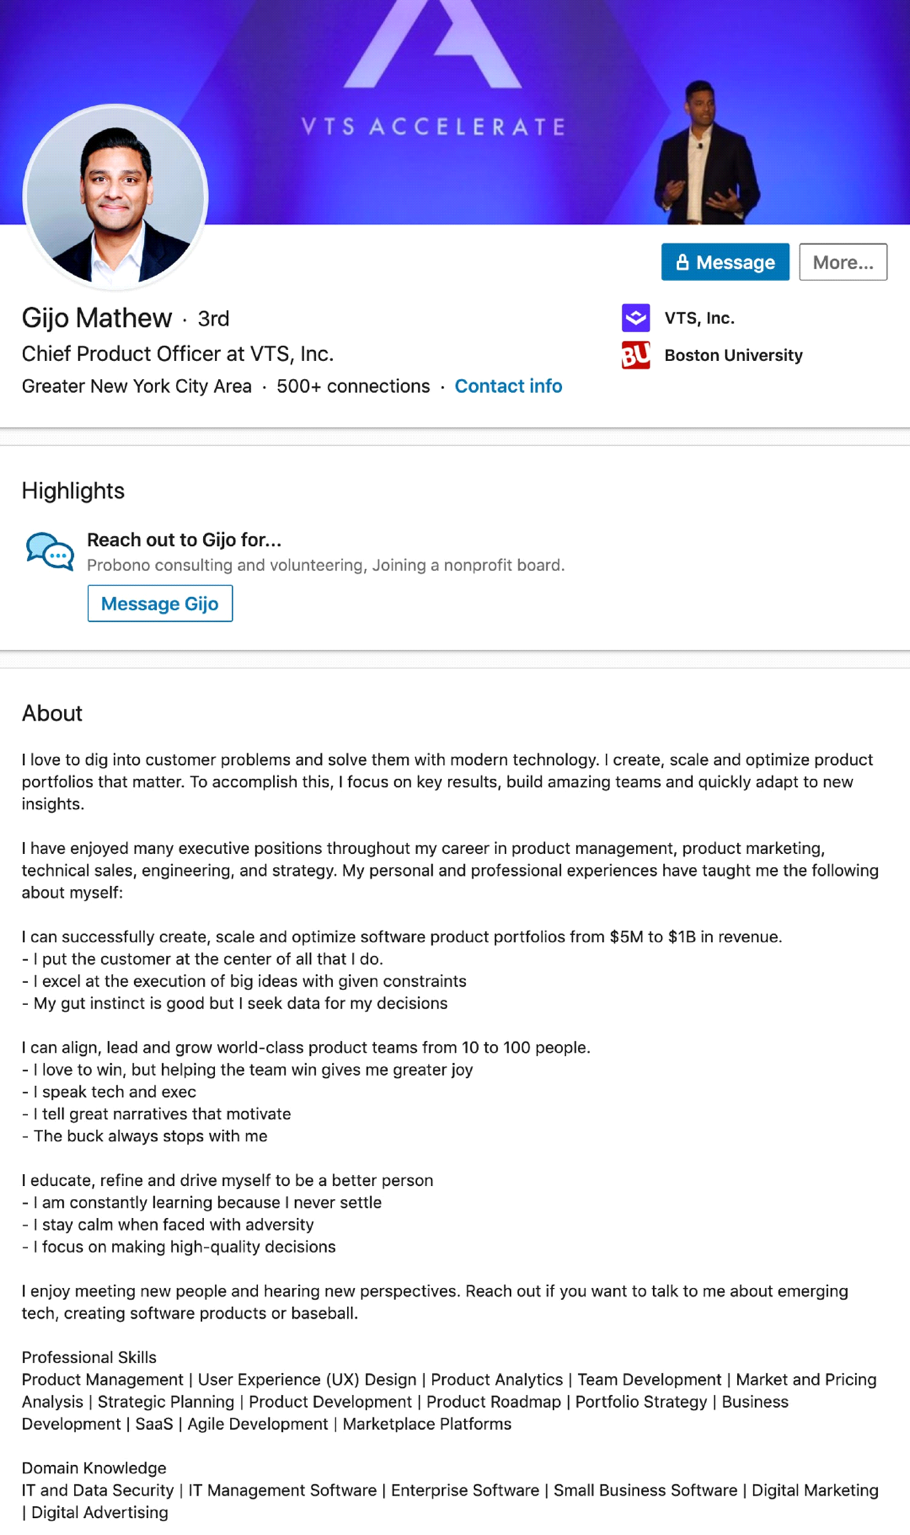 Here are some excellent LinkedIn profile examples